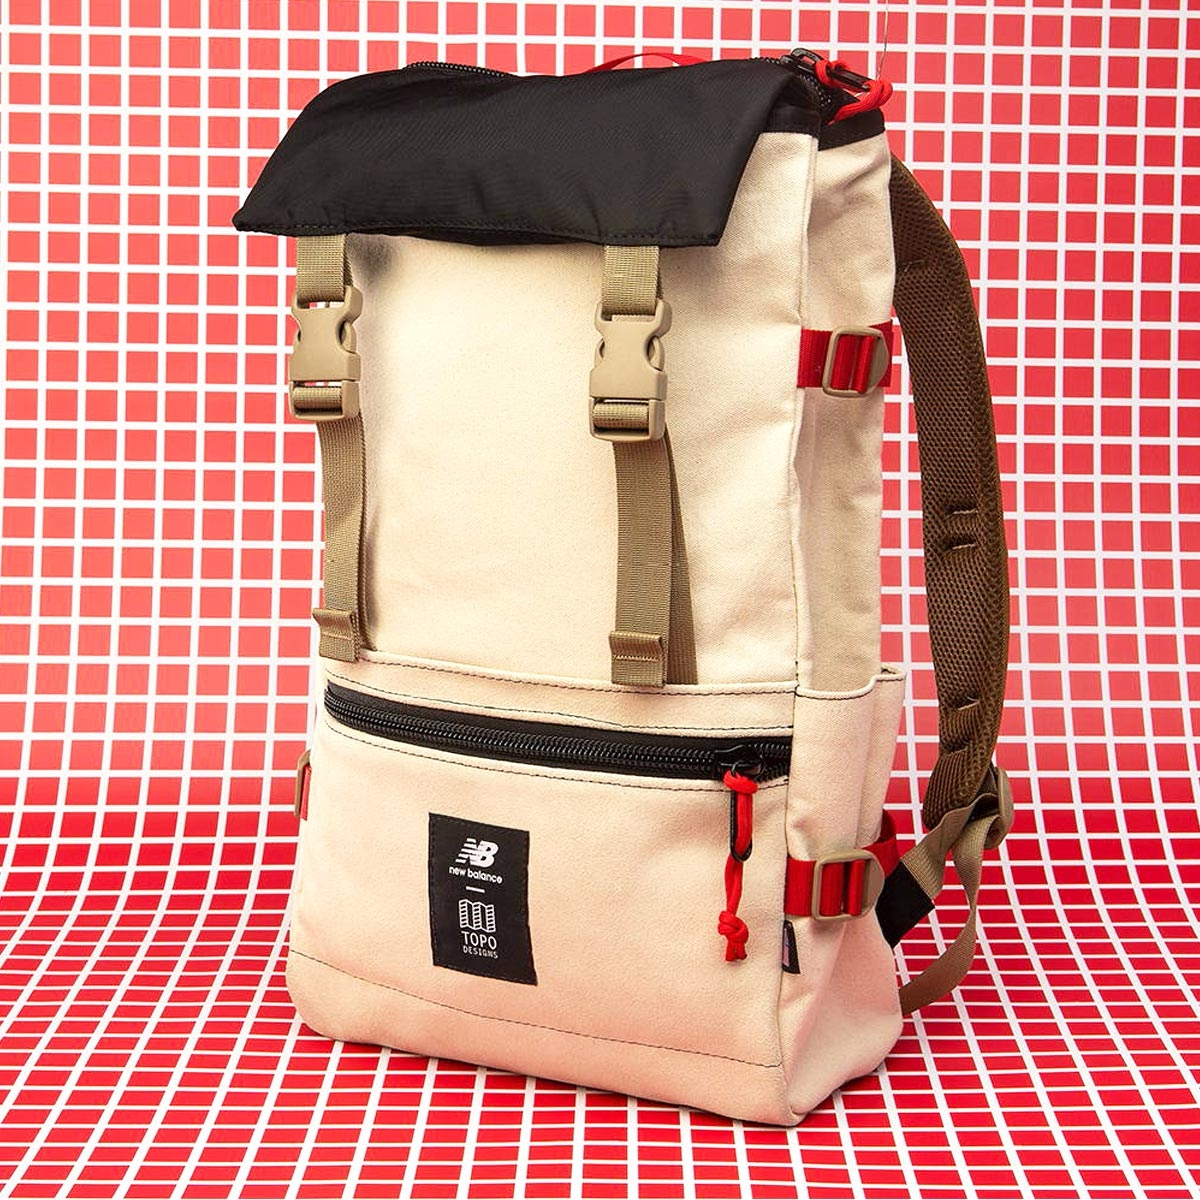 Topo Designs x New Balance Rover Pack, timeless backpack with great features